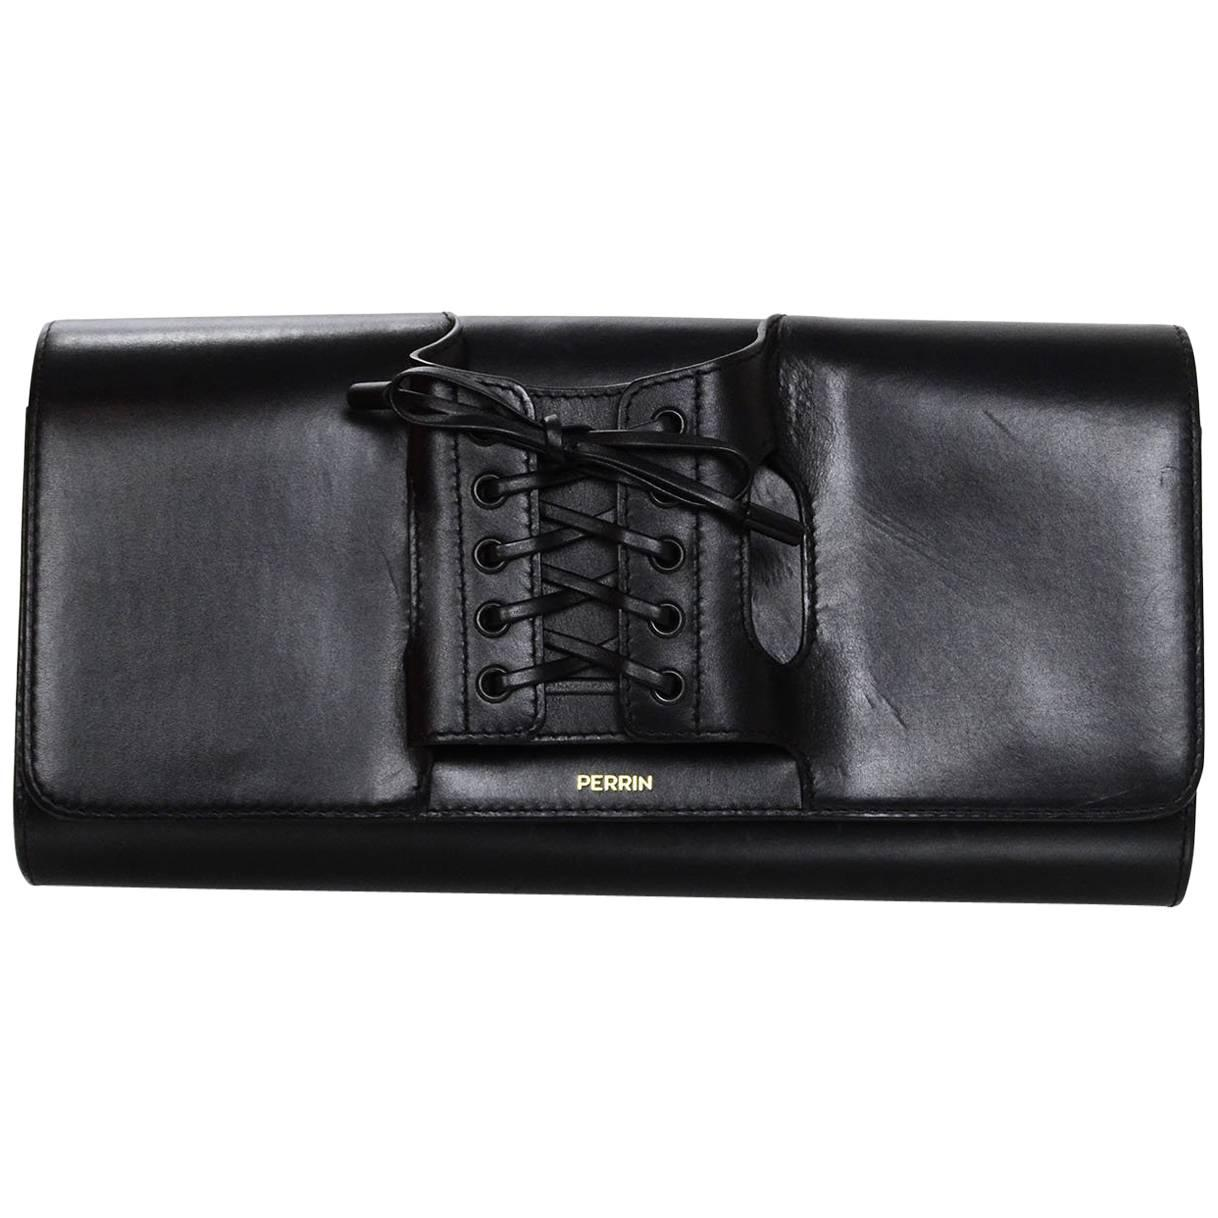 1stdibs Perrin Black Calf Leather Le Corset Glove Clutch Bag Rt. $1,200